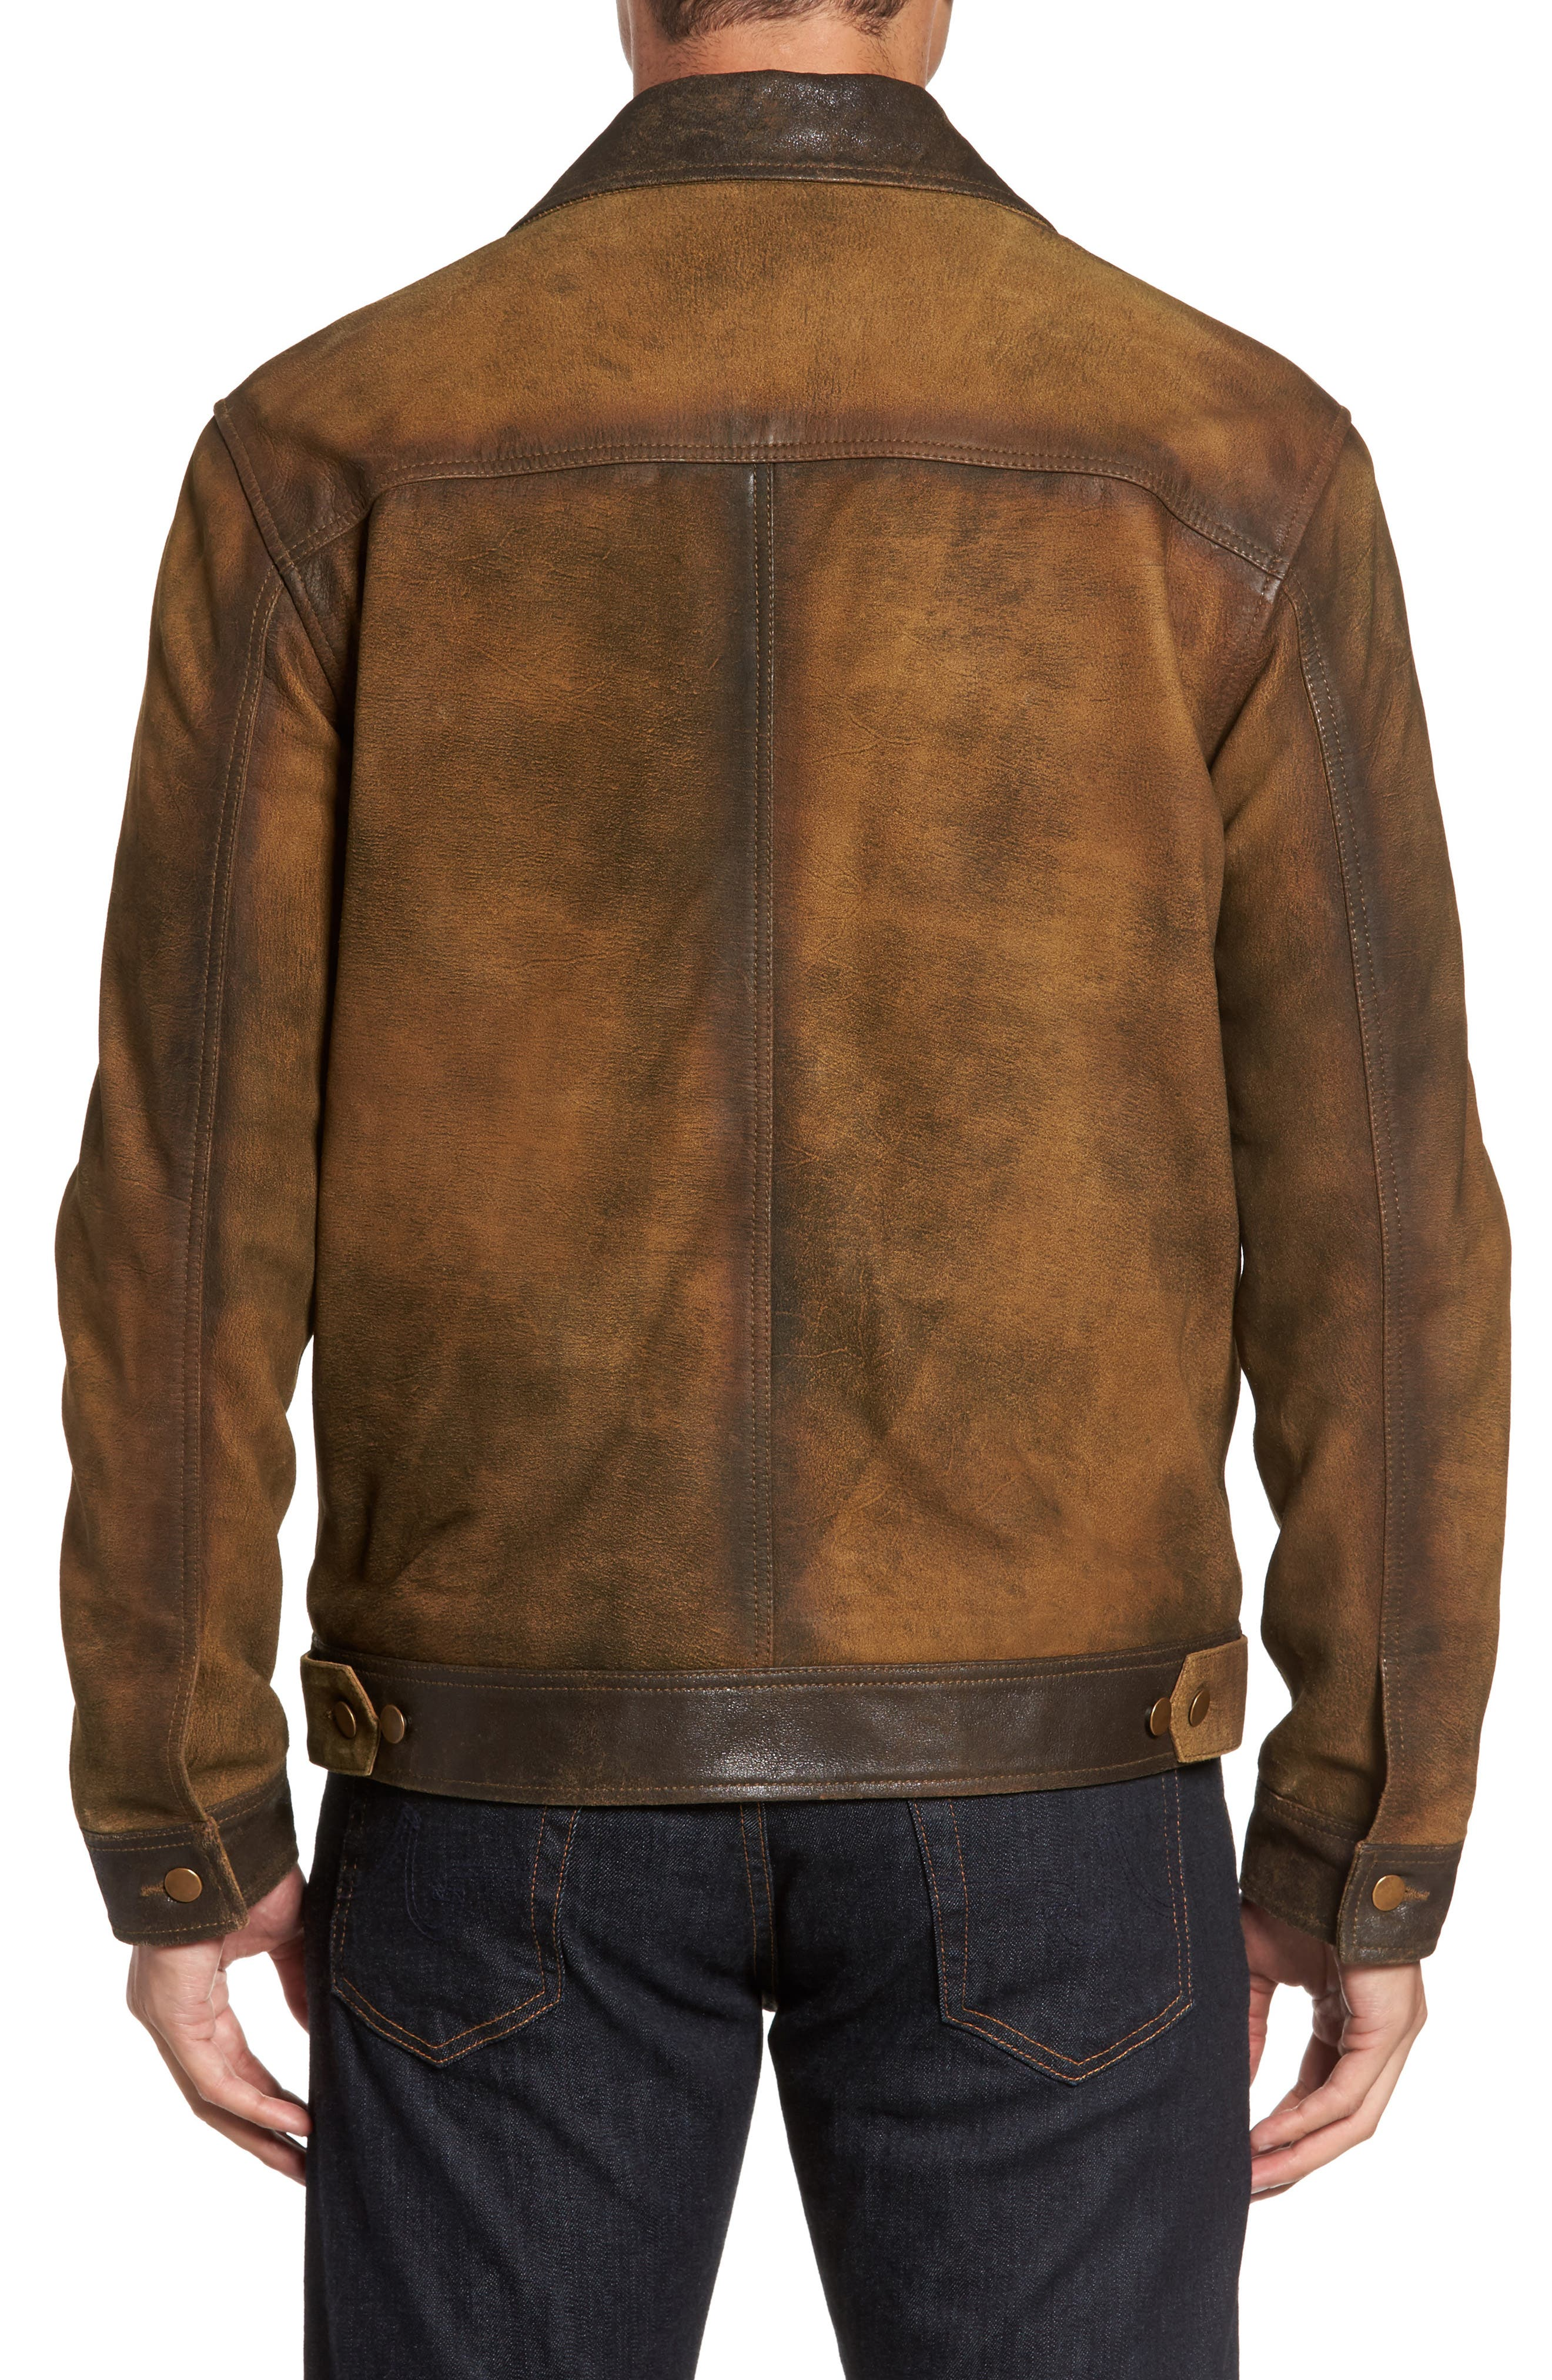 Distressed Leather Trucker Jacket,                             Alternate thumbnail 2, color,                             200